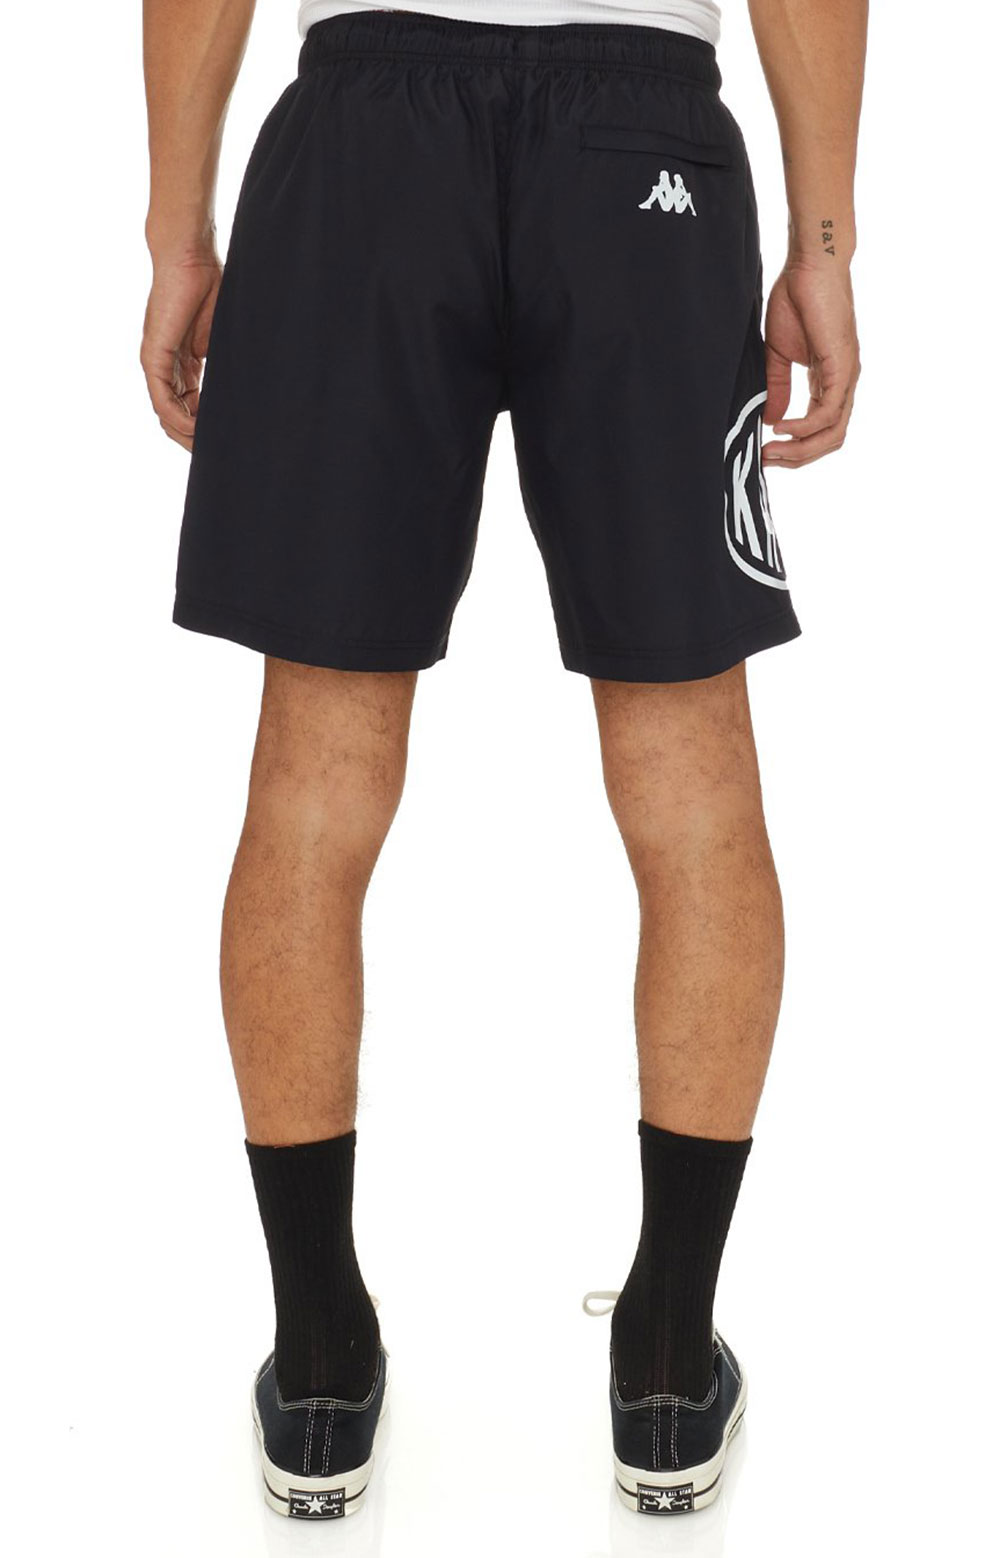 Authentic Pop Emay Shorts - Black/White  4